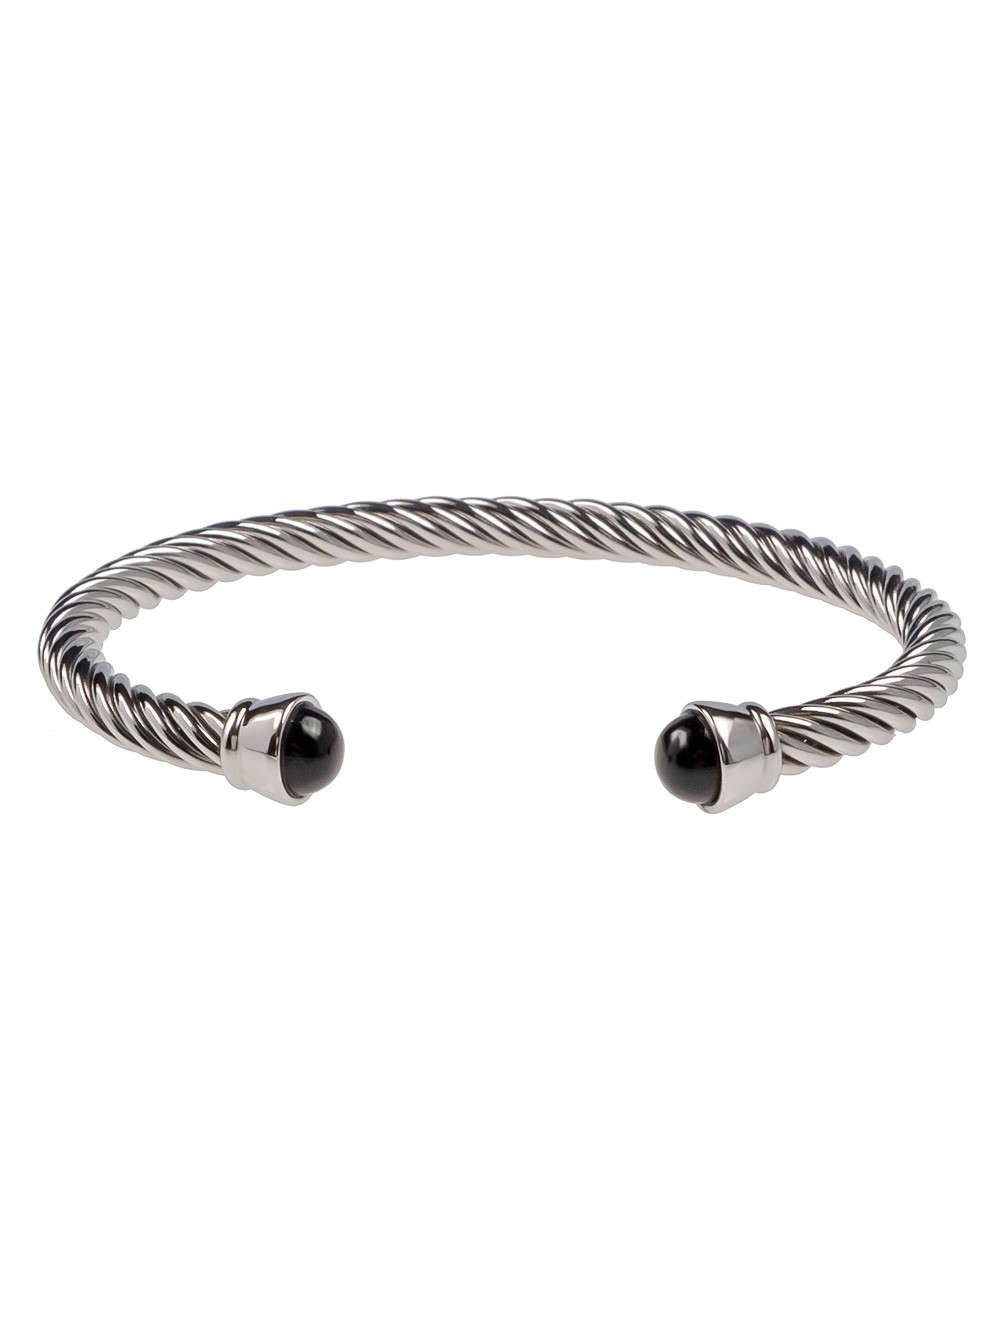 BANGLE TWIST BLACK